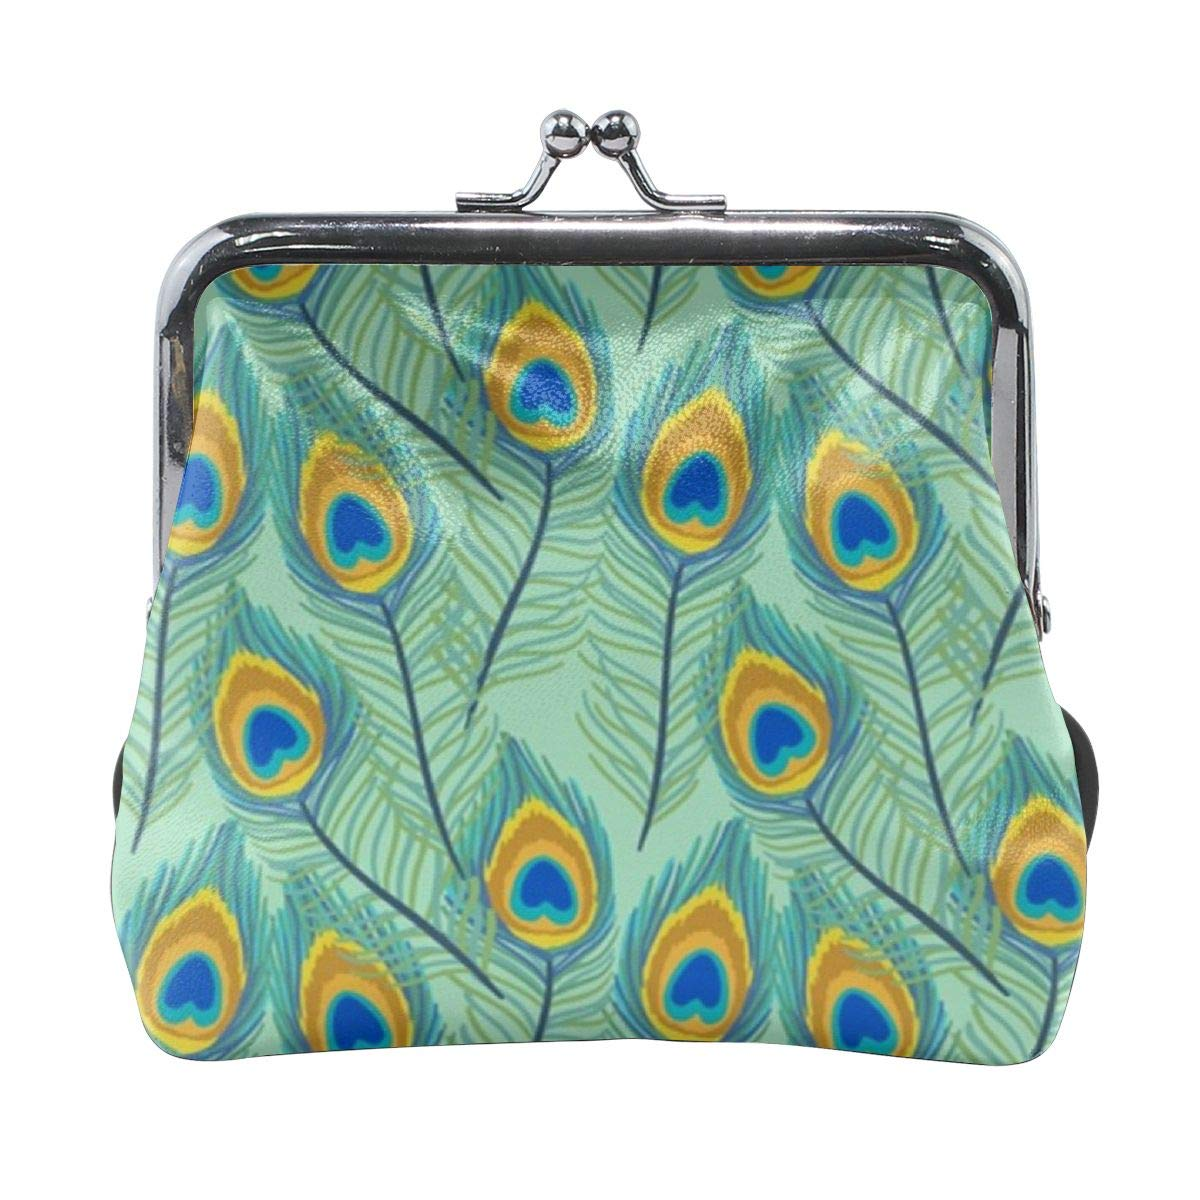 TYDhey Green Peacock Feather Pattern Classic Buckle Coin Purses Leather Kiss-Lock Change Wallets